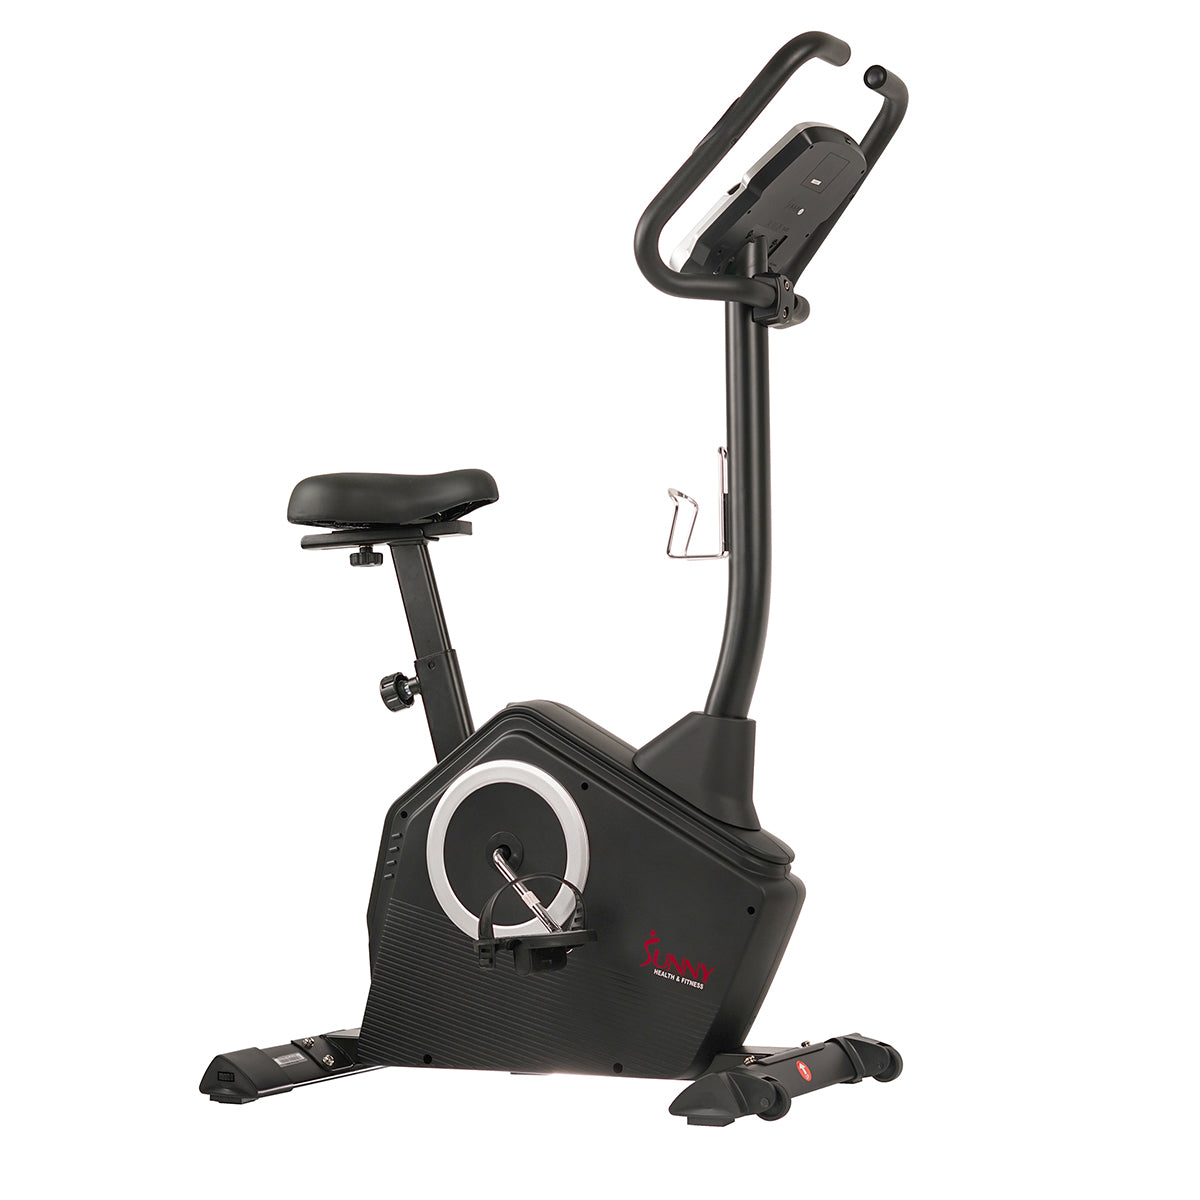 Details about  /Stationary Exercise Bike Magnetic Upright Bike with LCD Monitor /& Phone Holder